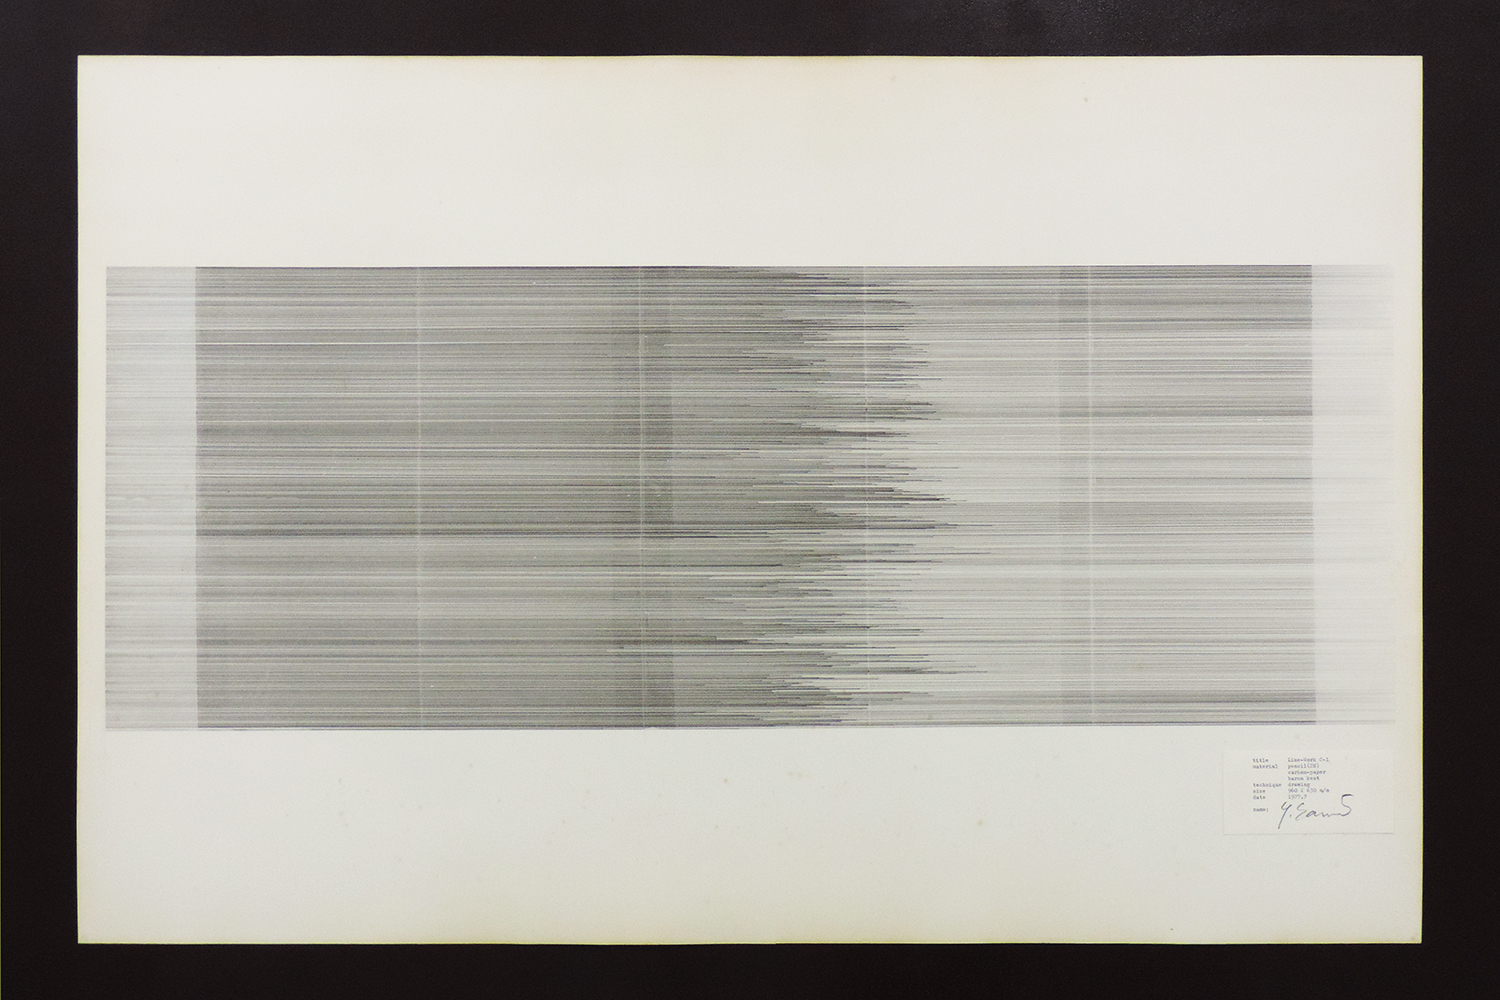 Line-Work C-1|Pencil (H2), Carbon, Baron Kent paper|63 x 96 cm|1977